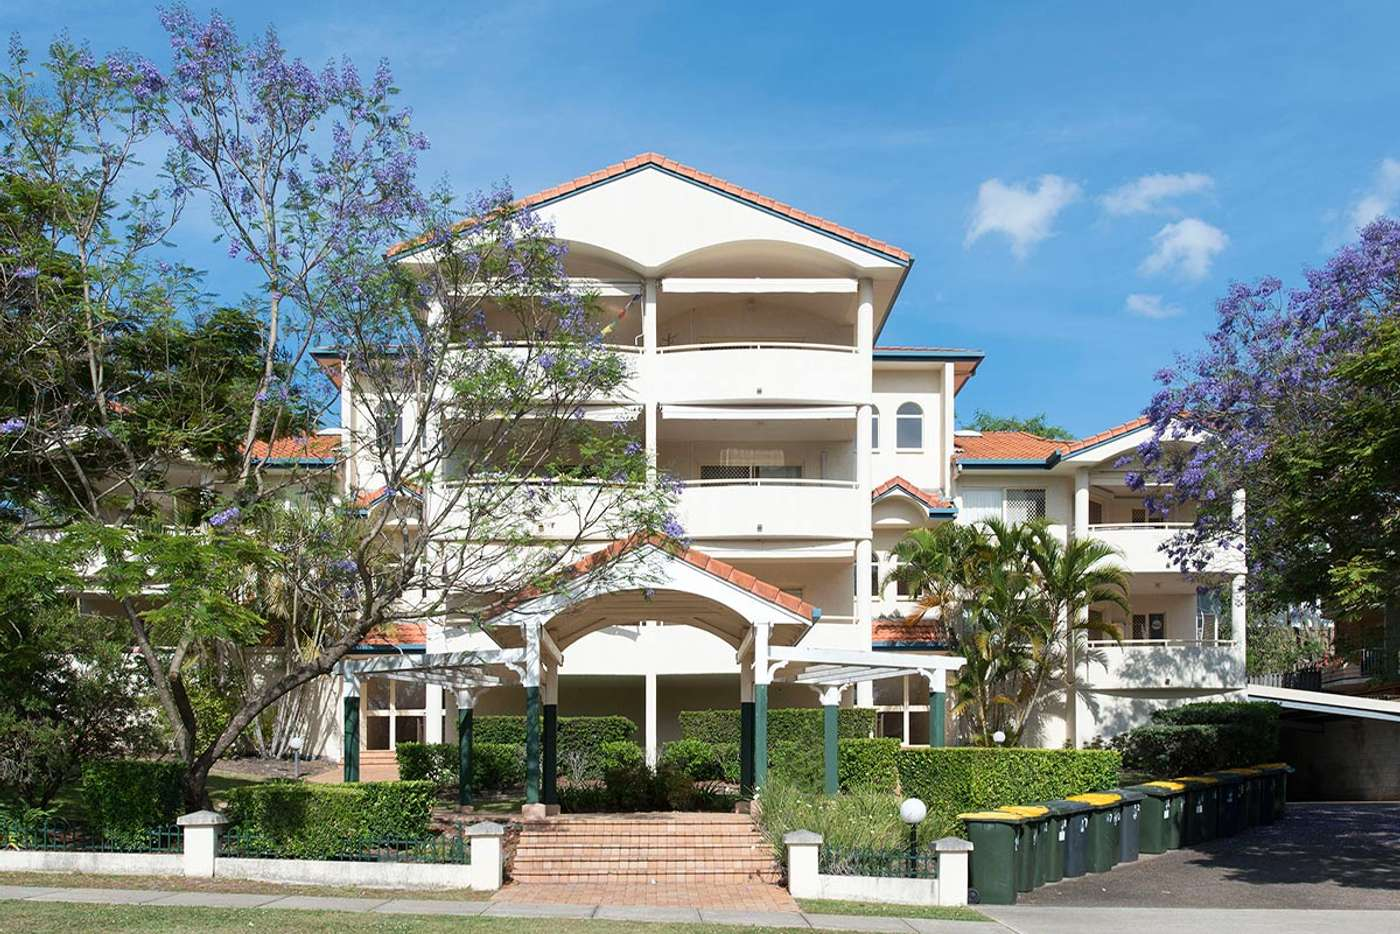 Main view of Homely apartment listing, 1/52-58 Mitre Street, St Lucia QLD 4067